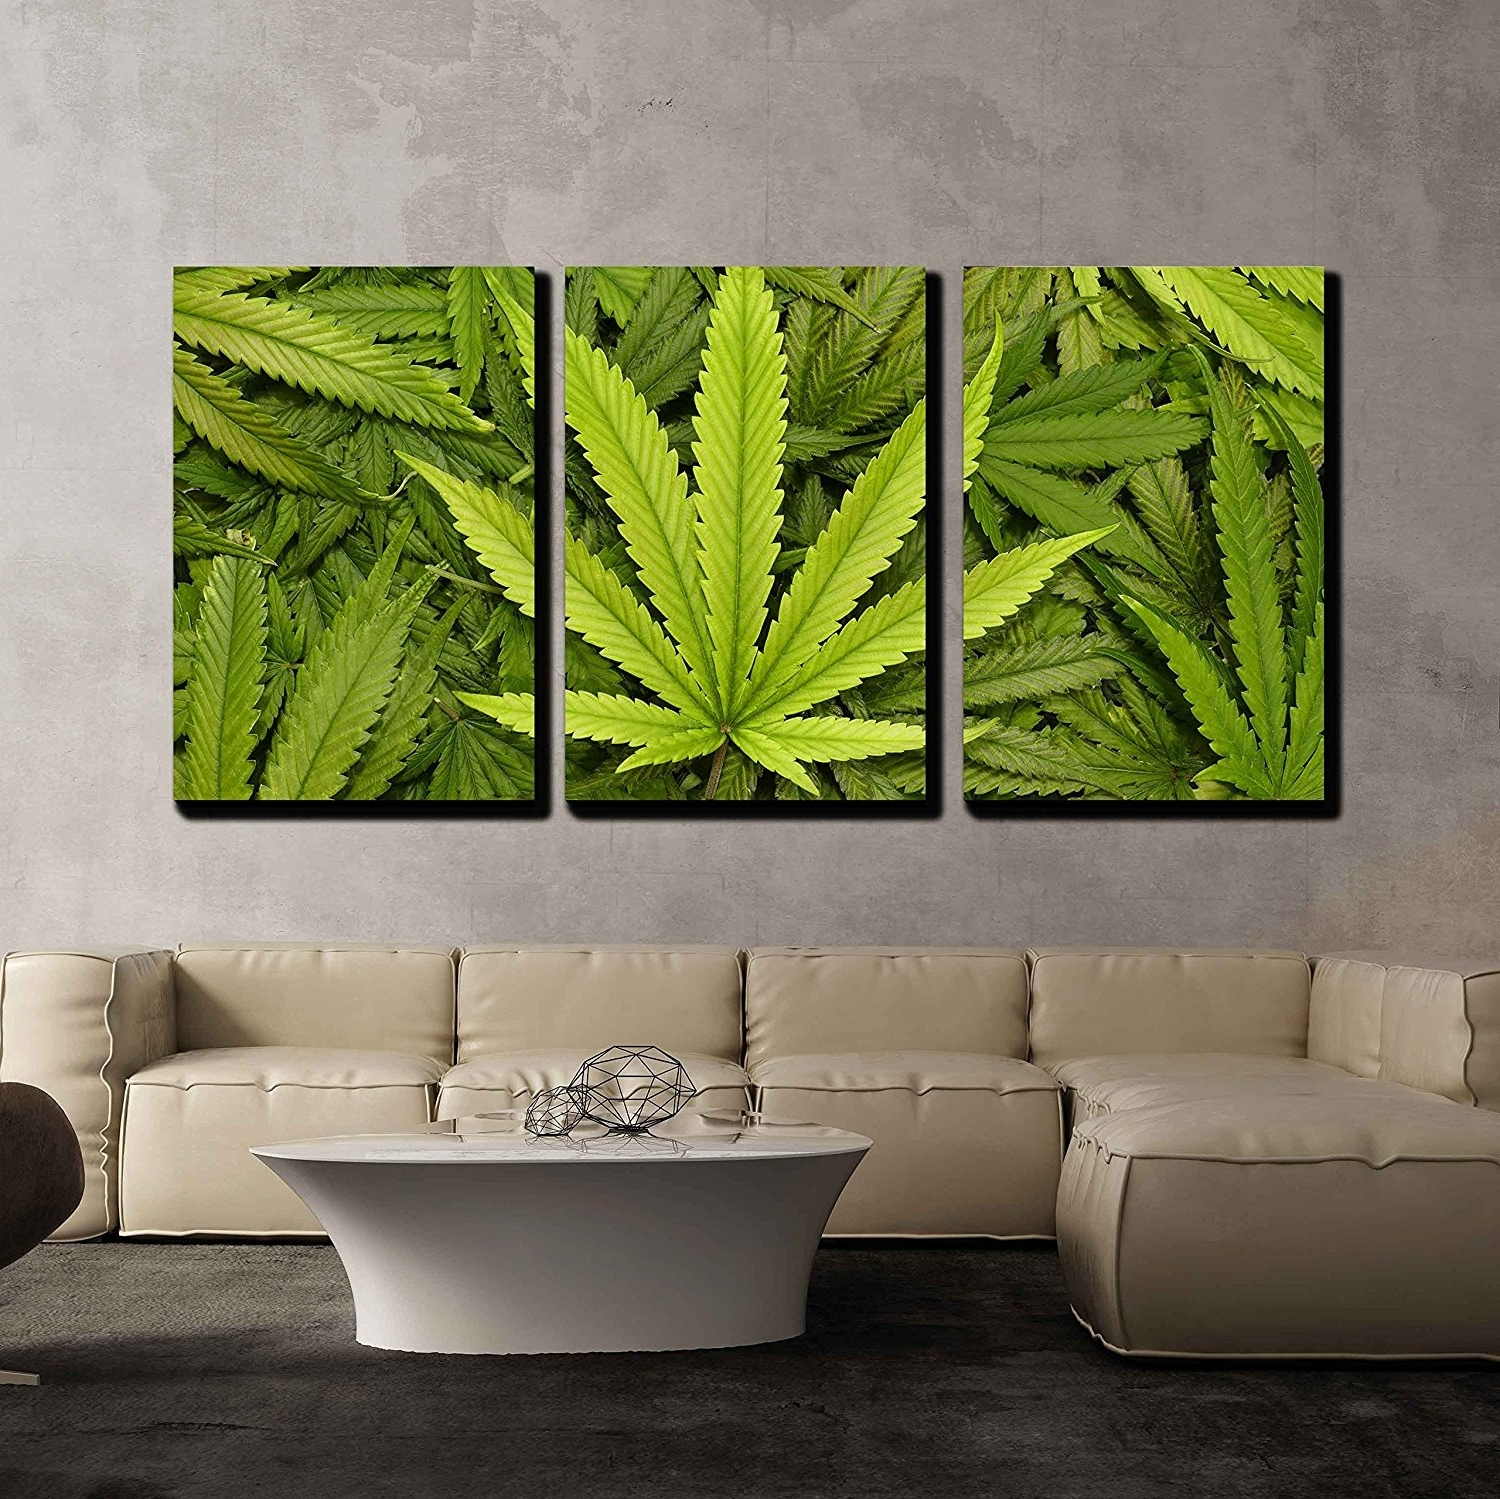 Wall26 – Art Prints – Framed Art – Canvas Prints – Greeting Inside Well Known Leaves Canvas Wall Art (View 2 of 15)